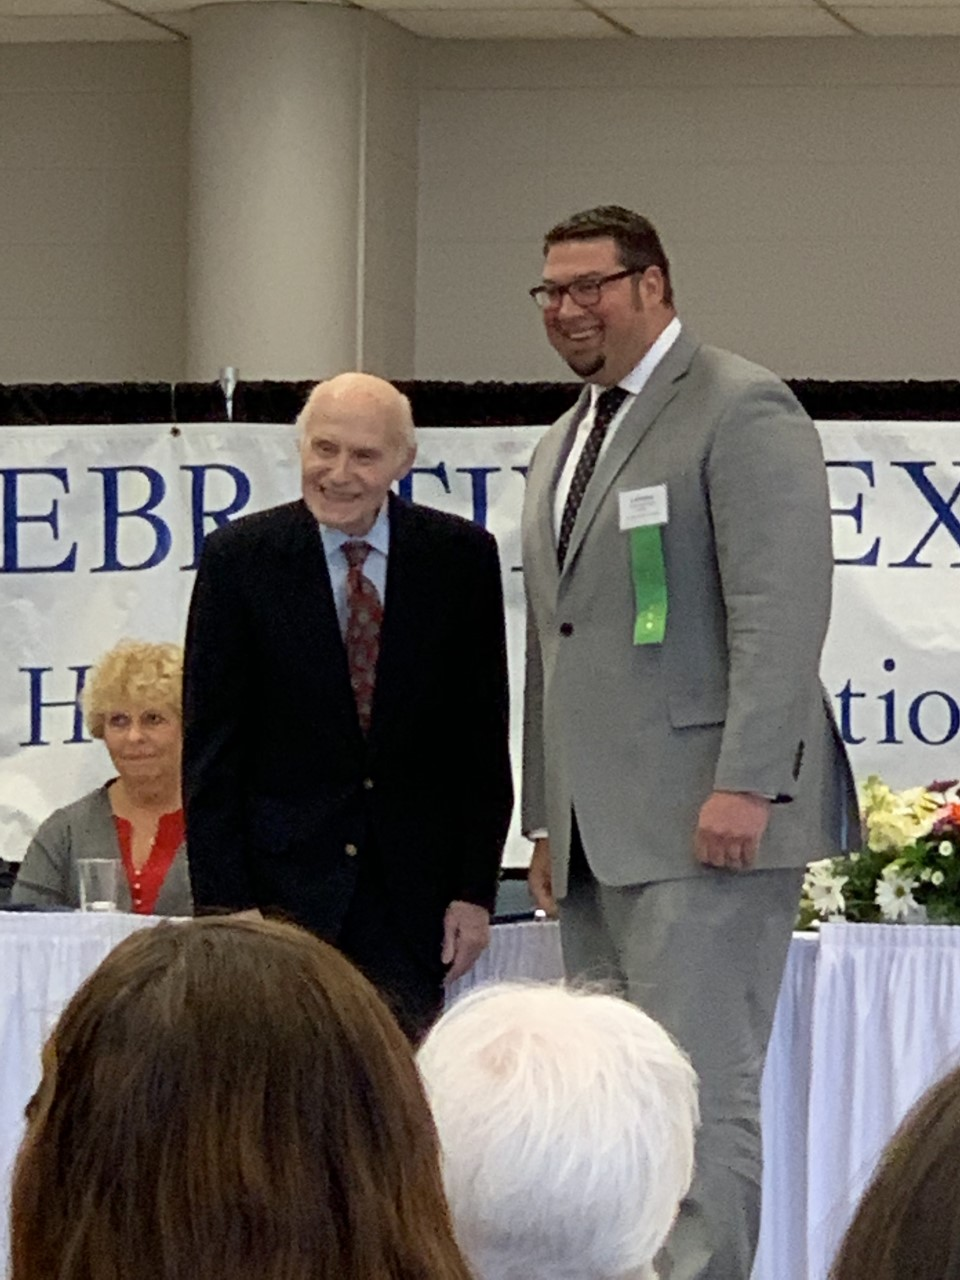 CHS Principal Mr. Ty Breitlow is presented one of twelve 2019 Herb Kohl Educational Foundation Principal Leadership Awards by former United States Senator Herb Kohl at the Herb Kohl Educational Foundation 2019 Student, Teacher and Principal Recognition Luncheon held at Appleton North High School on March 30